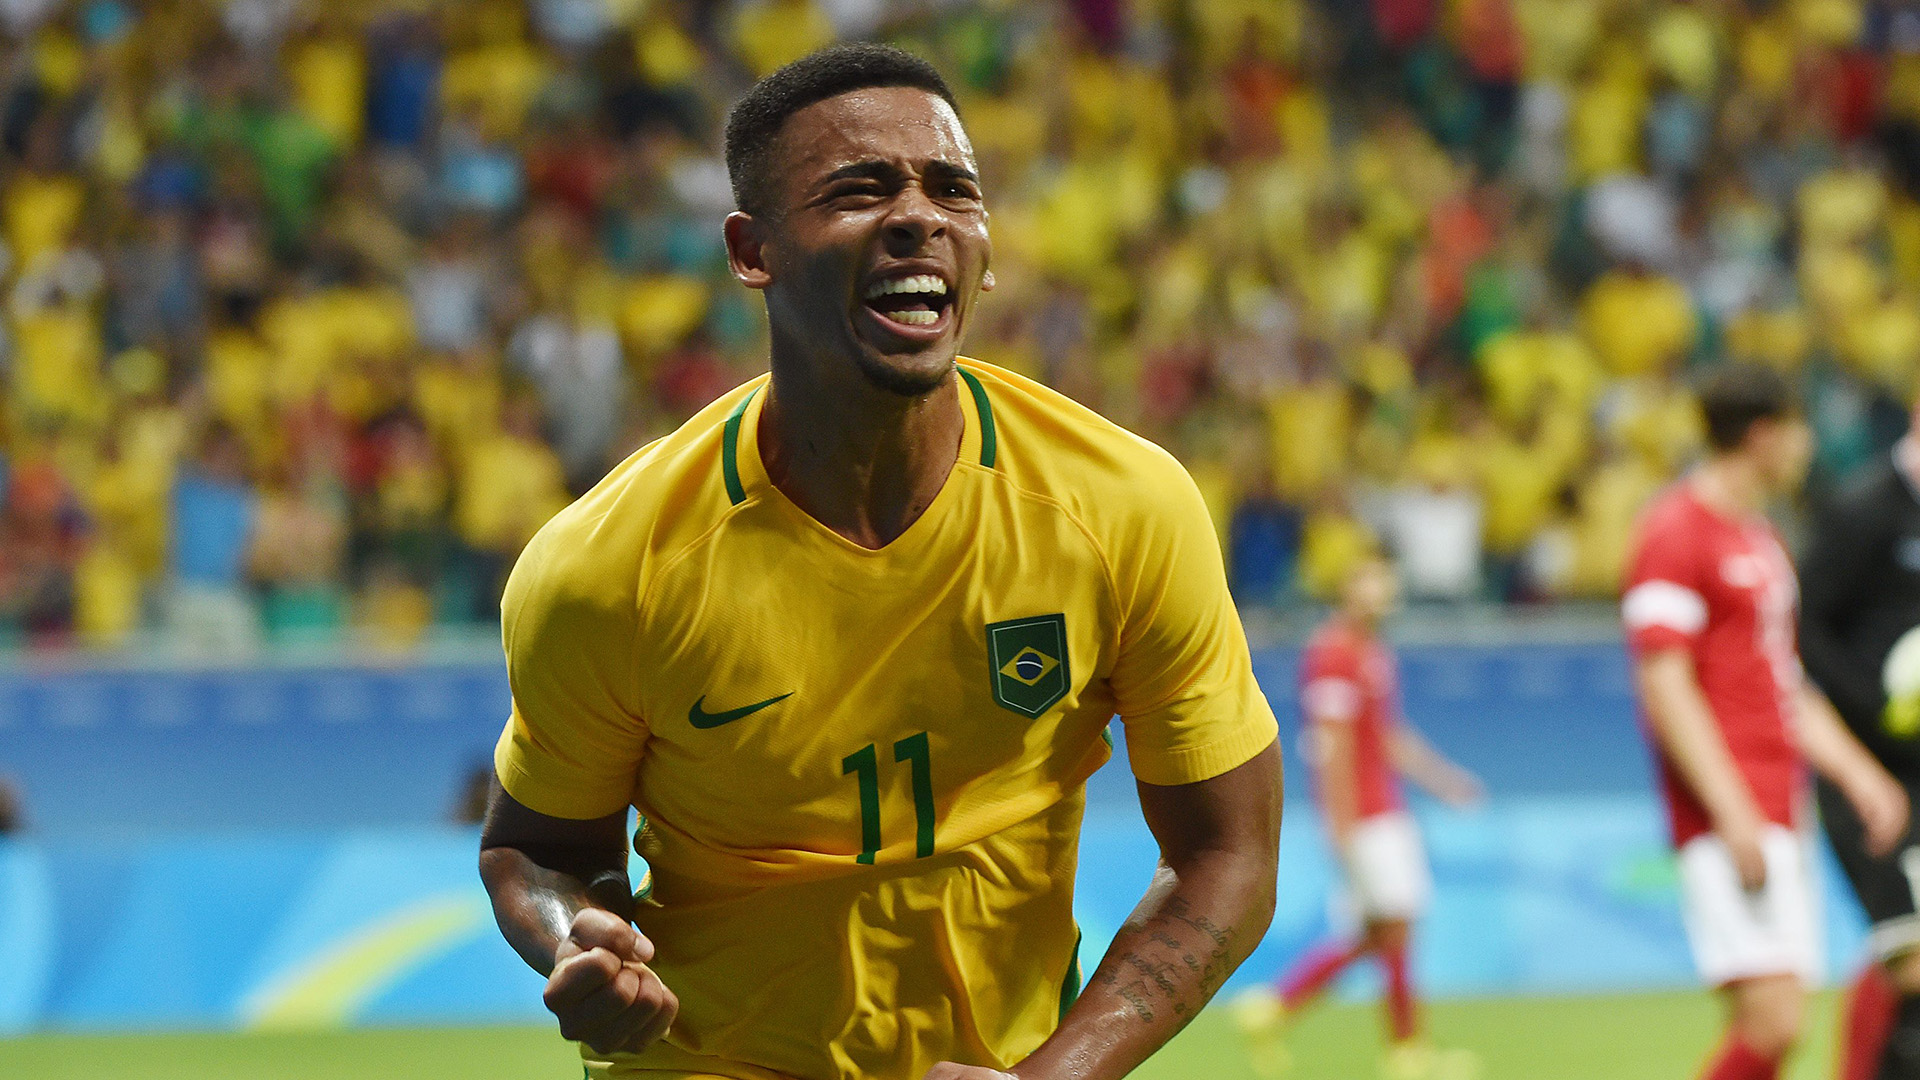 Love Animated Wallpaper For Mobile Gabriel Jesus Wallpapers Hd